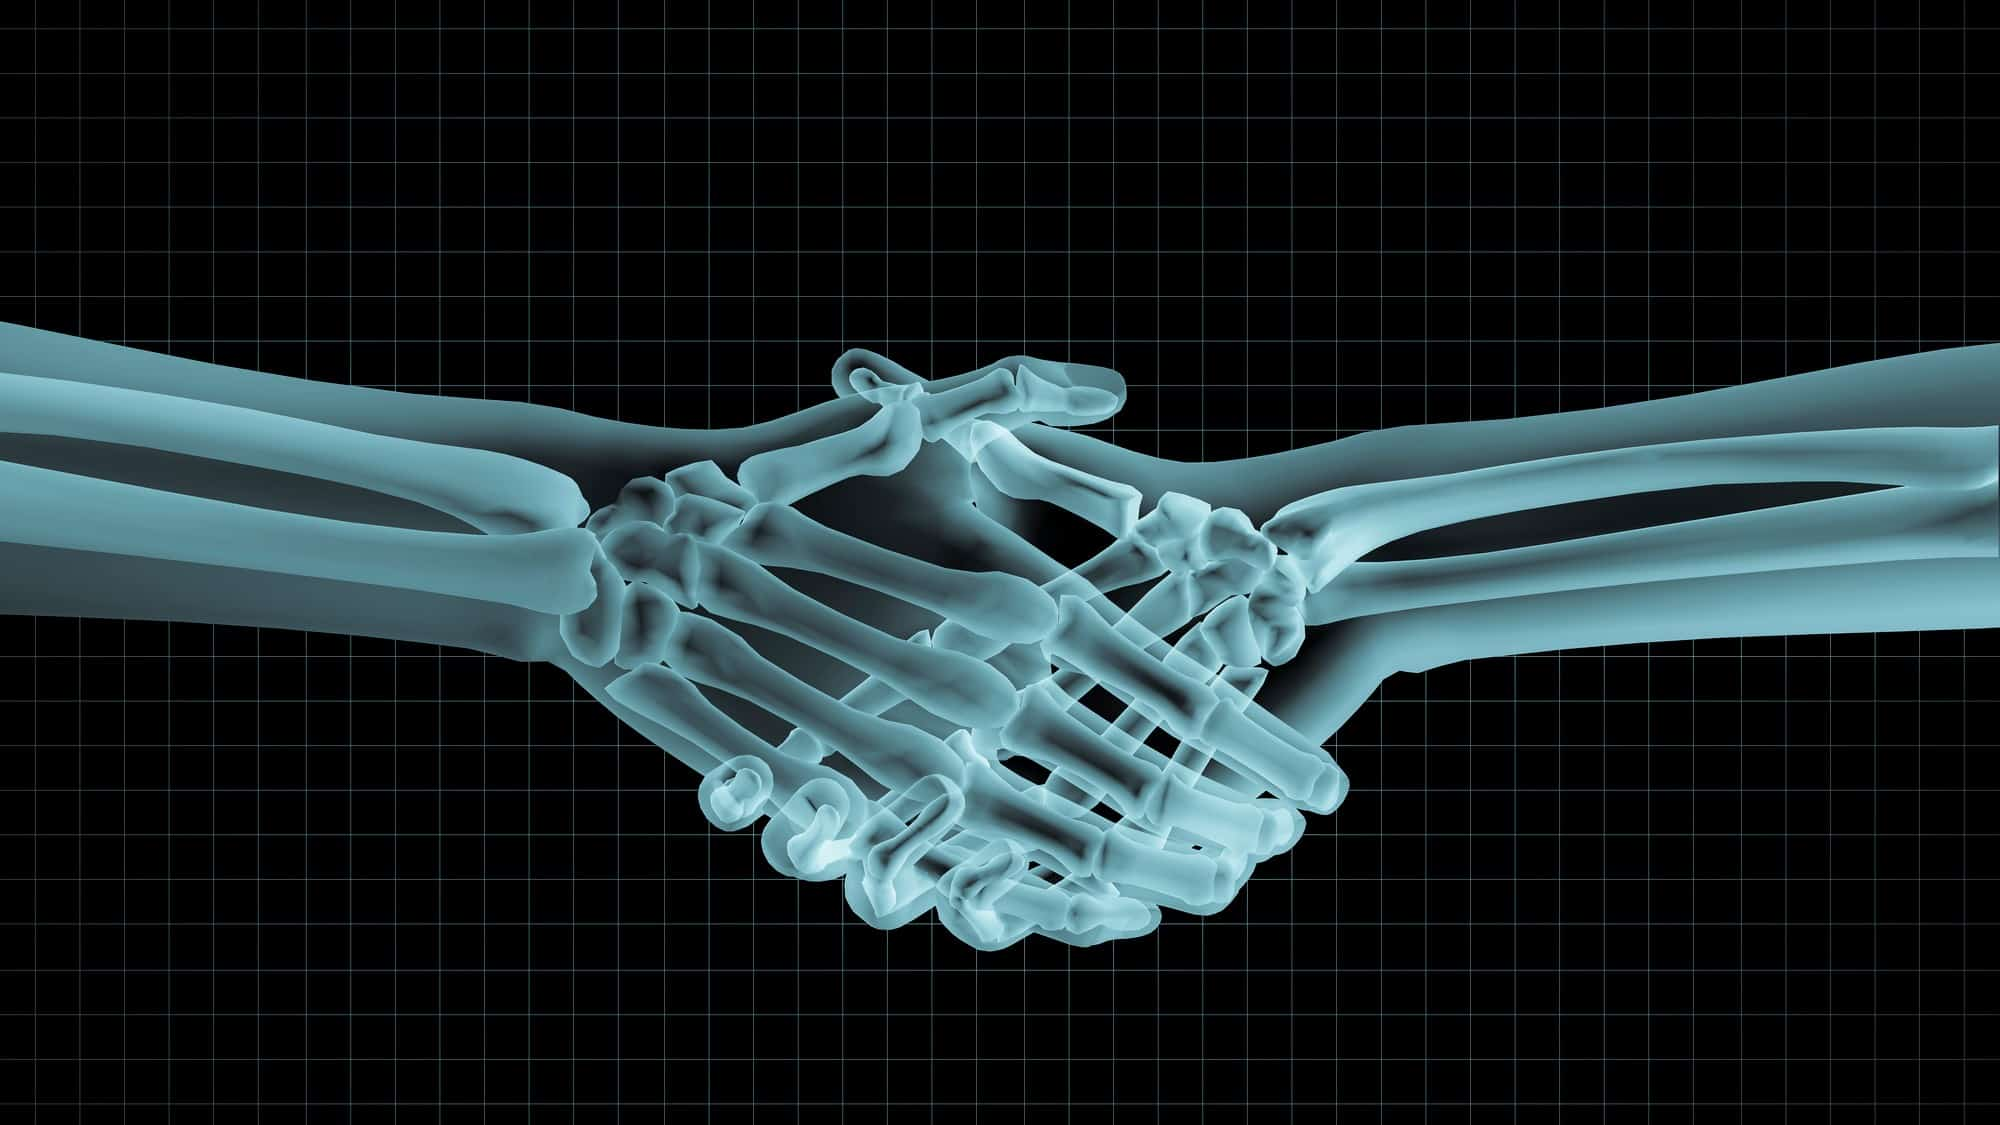 asx medical share price represented by x-ray or people shaking hands